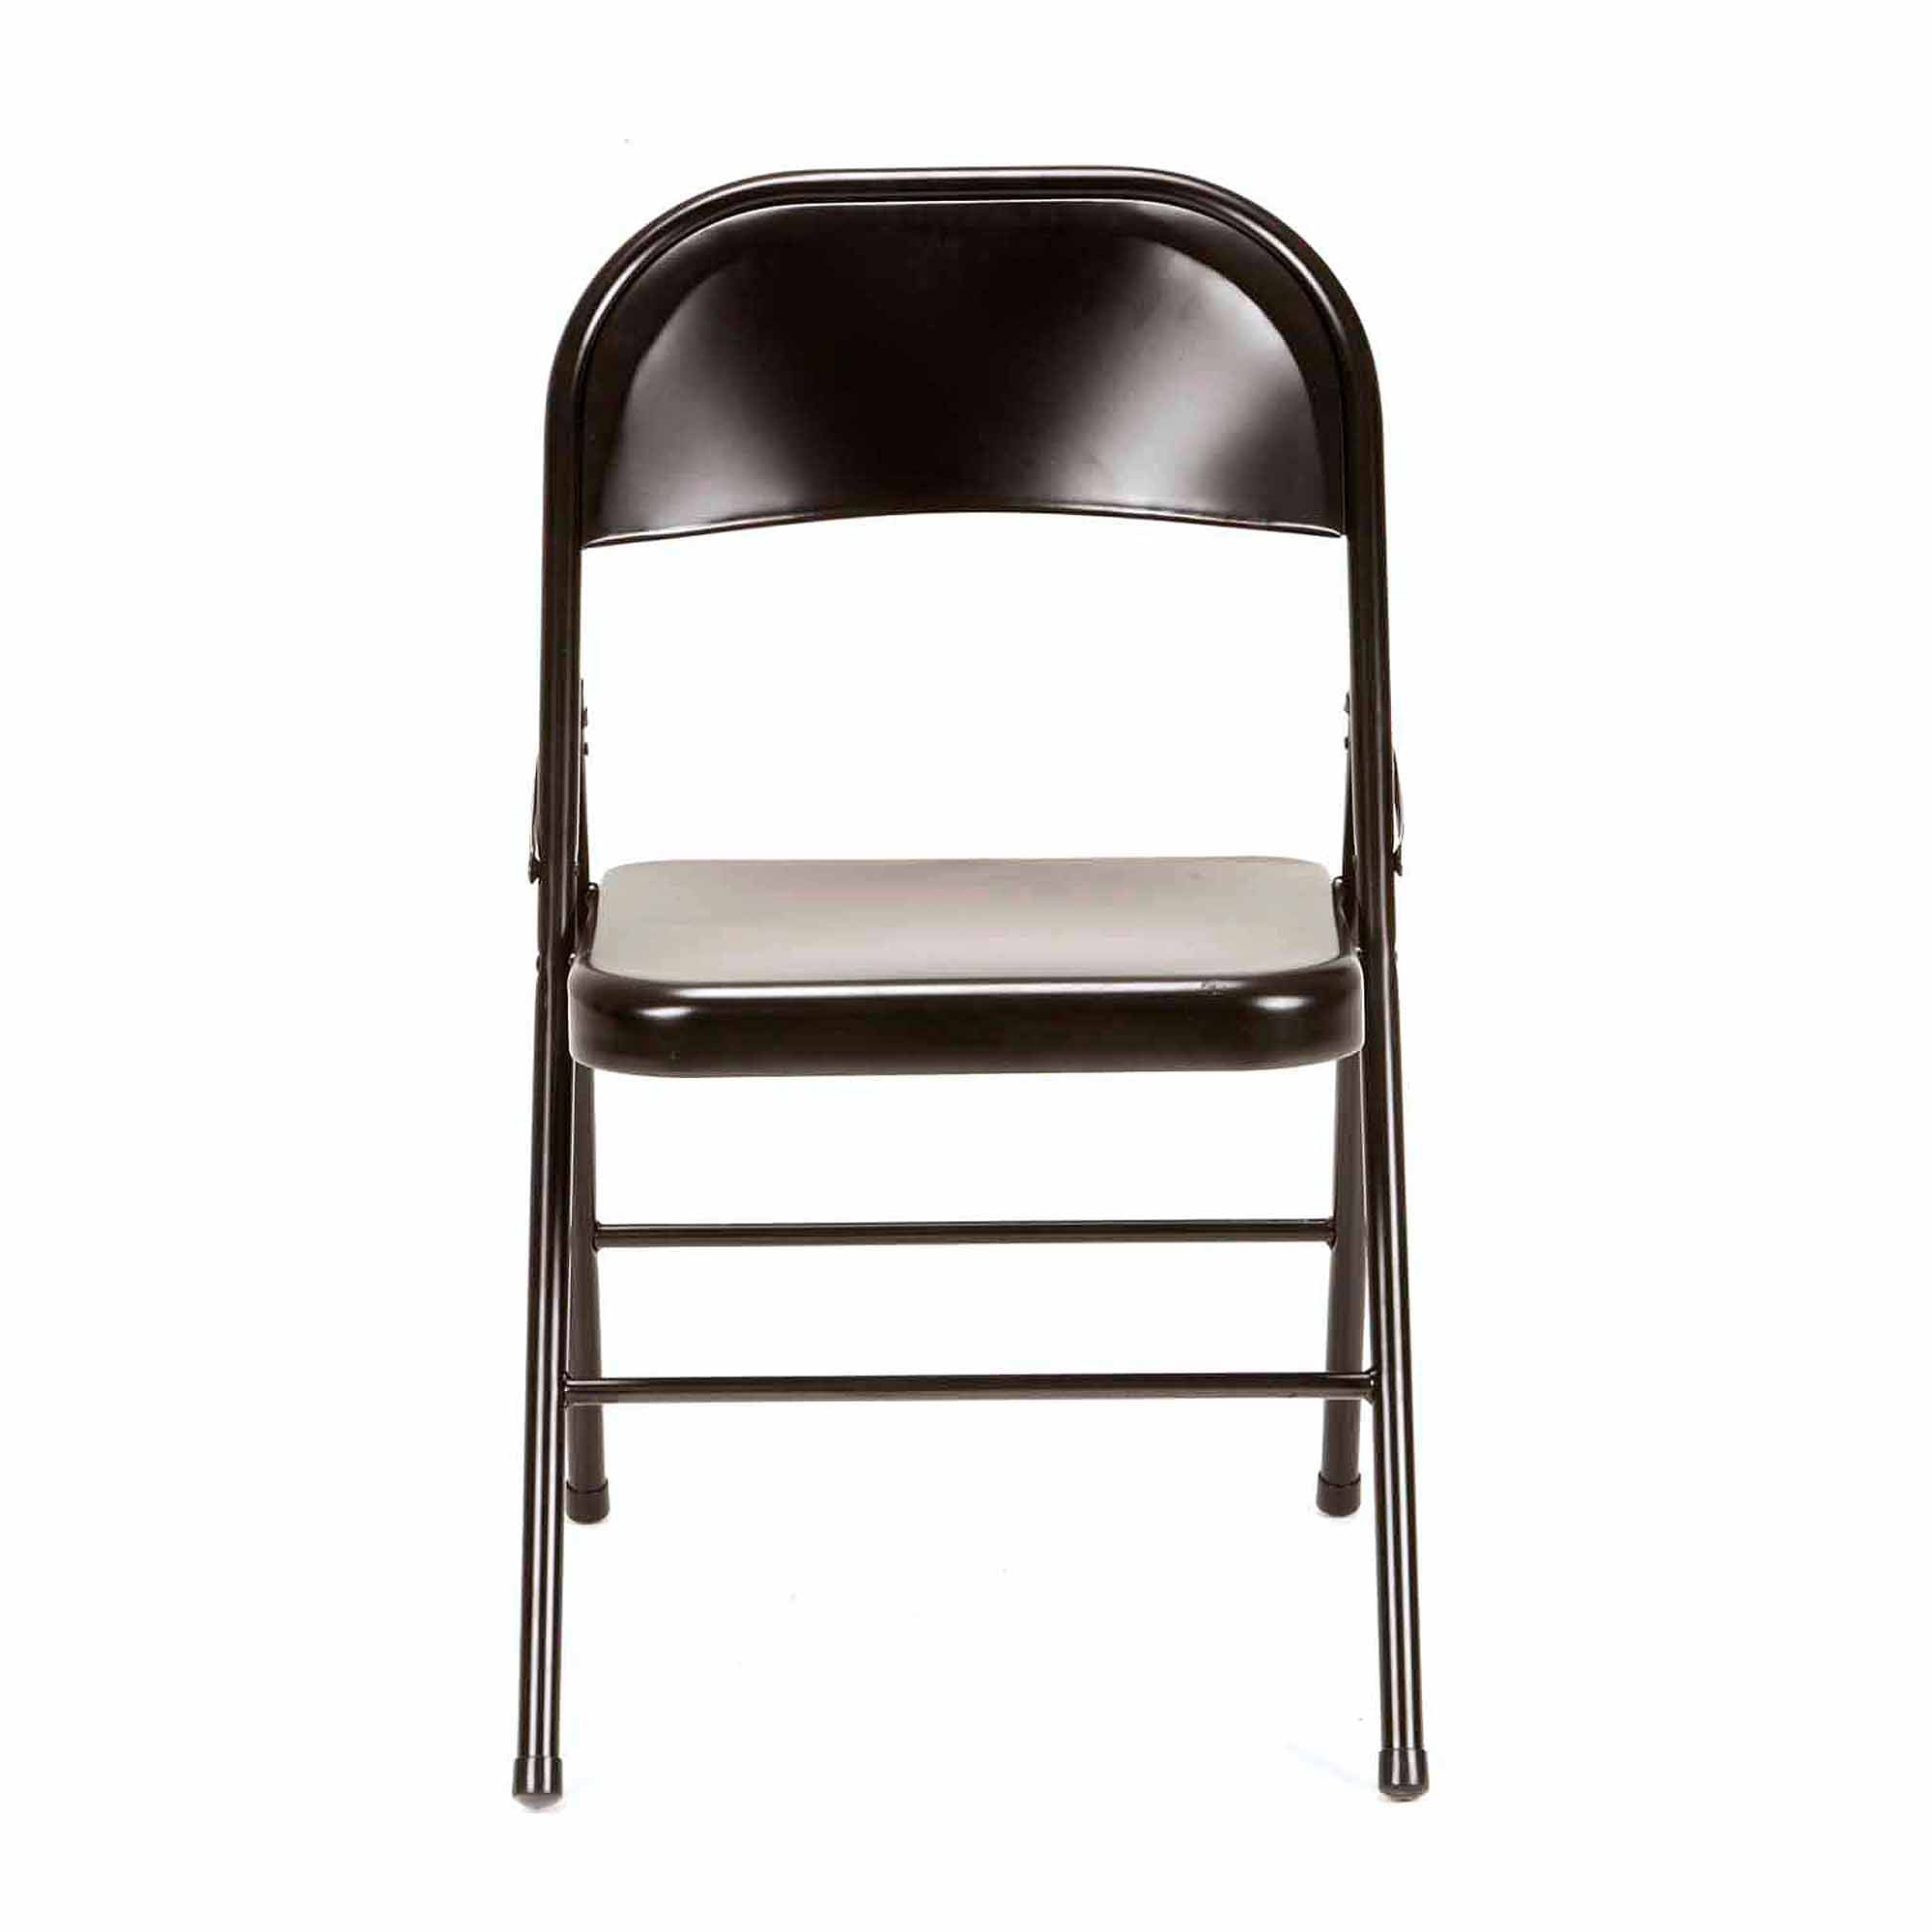 Mainstays Steel Folding Chair (4-Pack), Black - Walmart.com